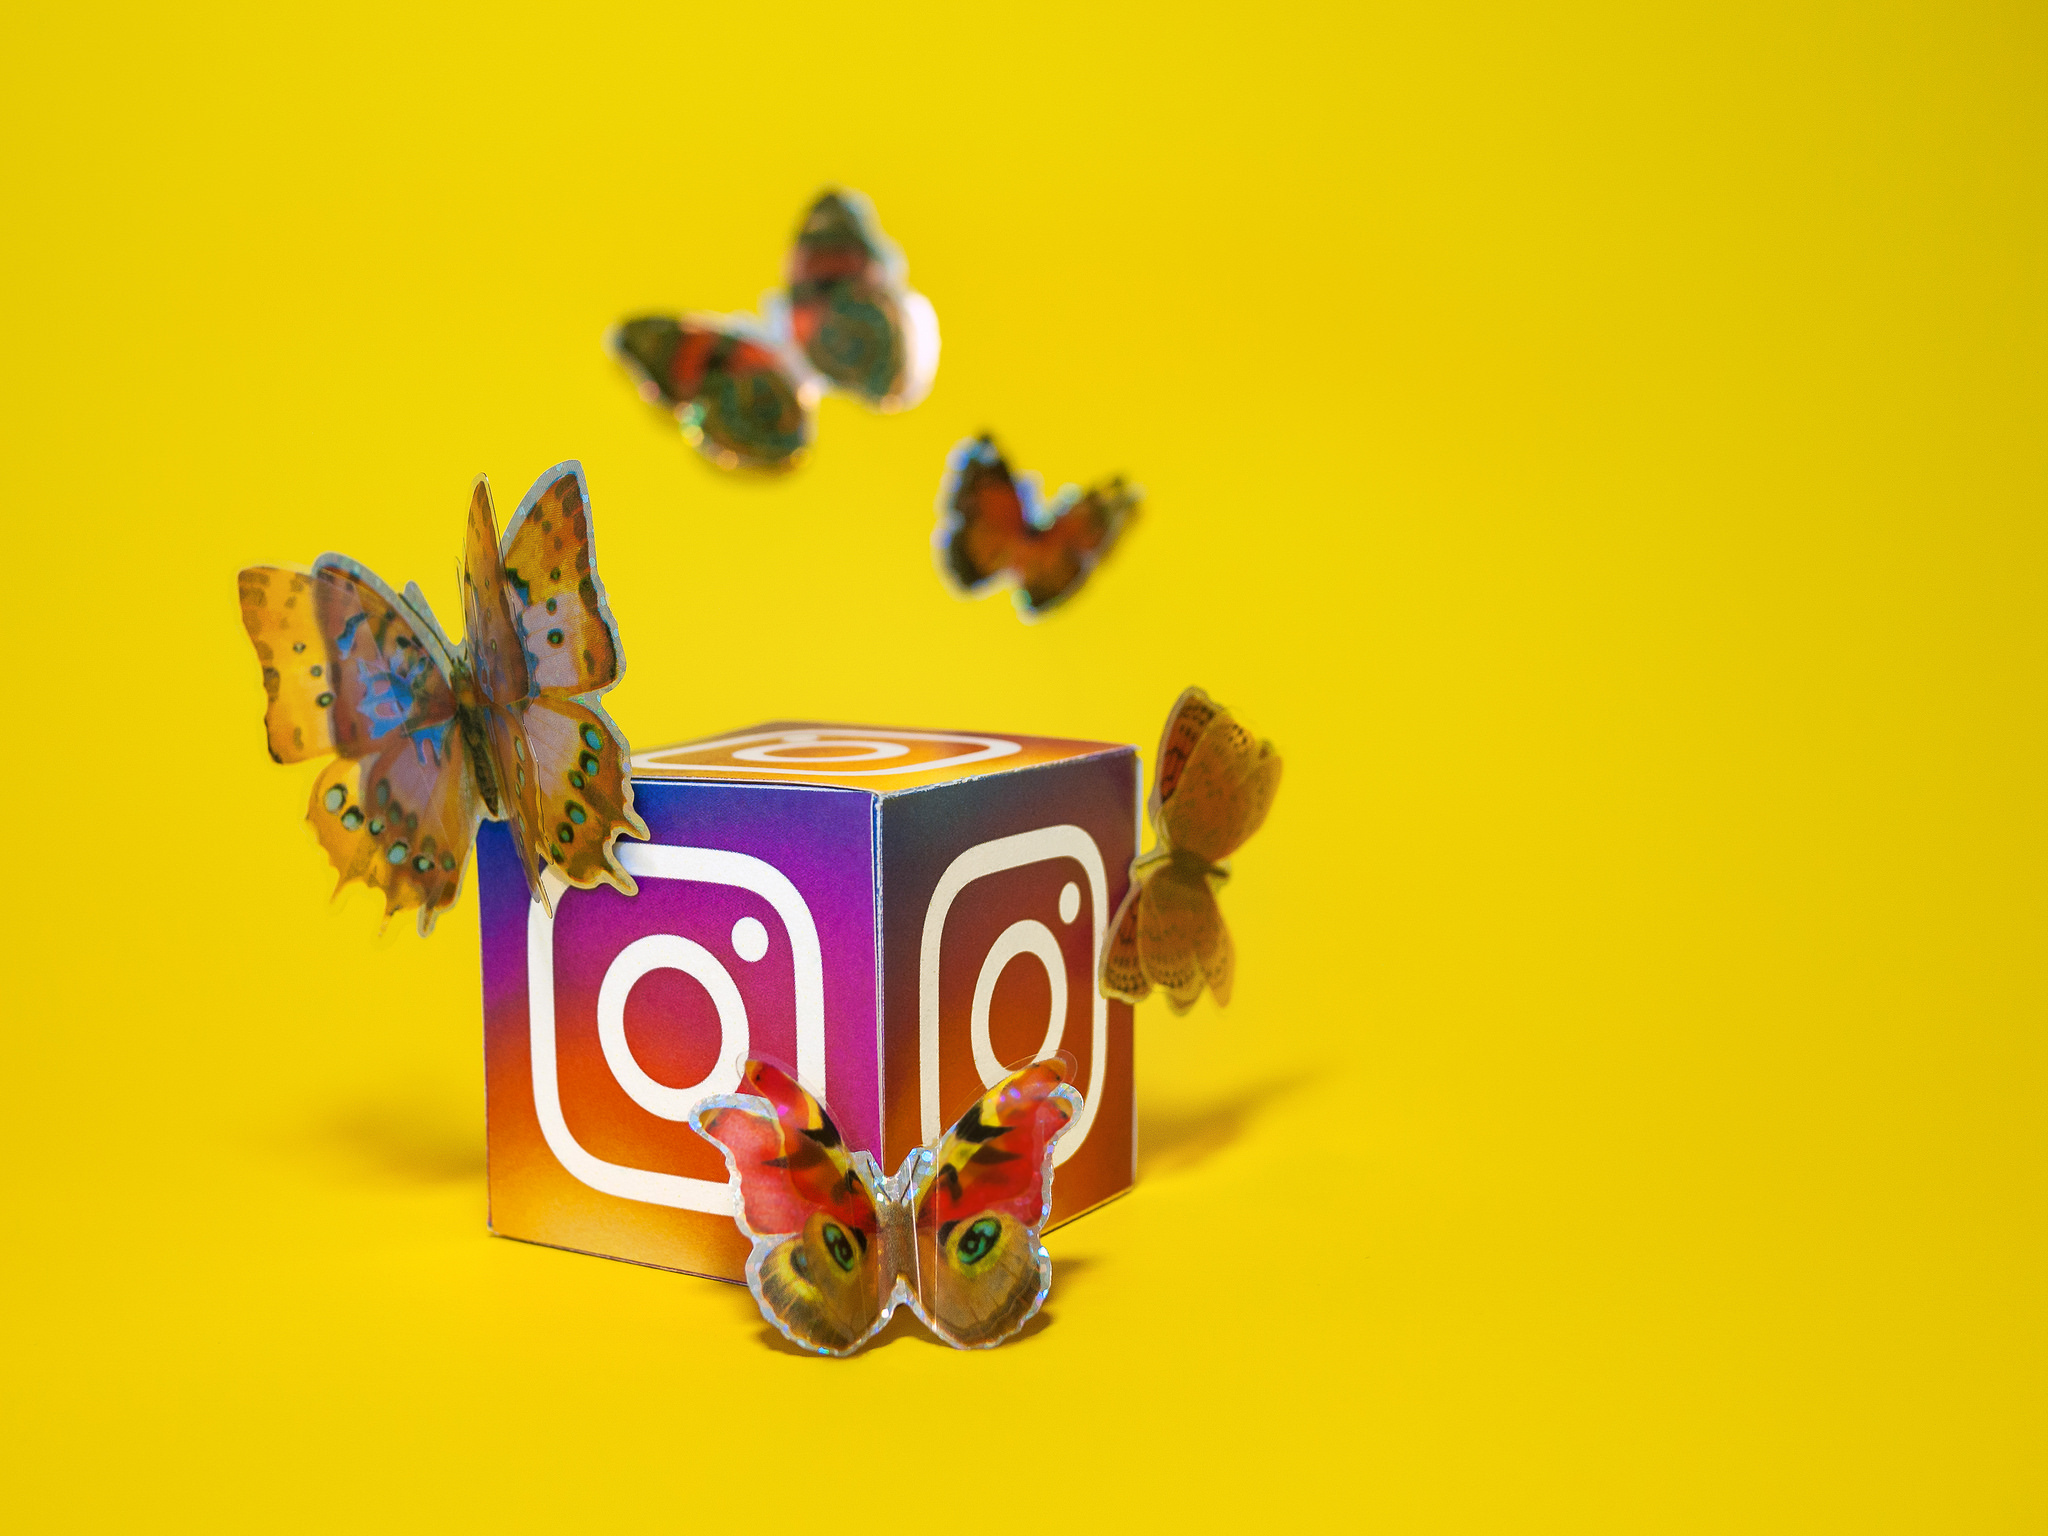 Social Media Butterfly - Instagram